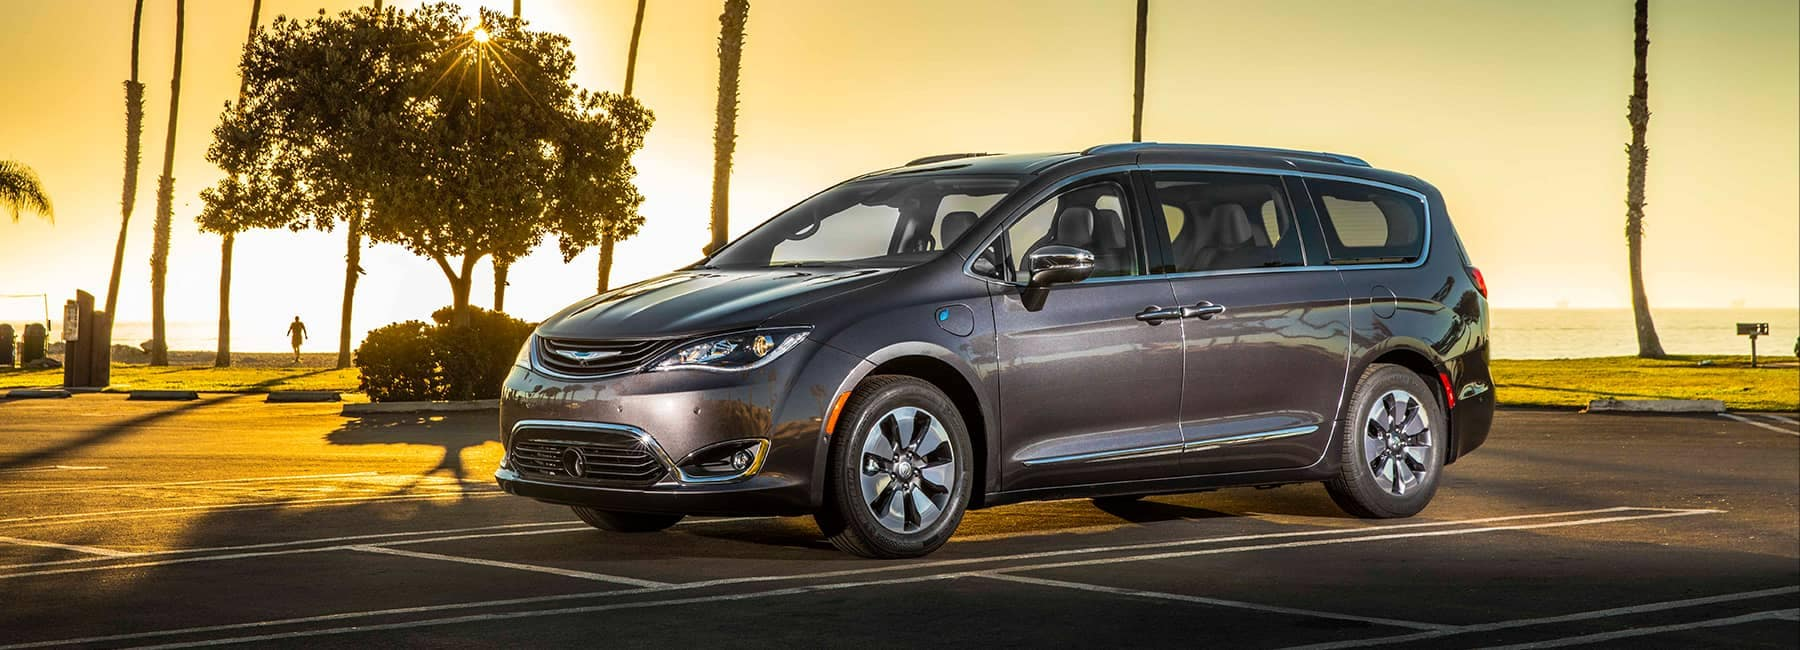 2018-Chrysler-Pacifica-